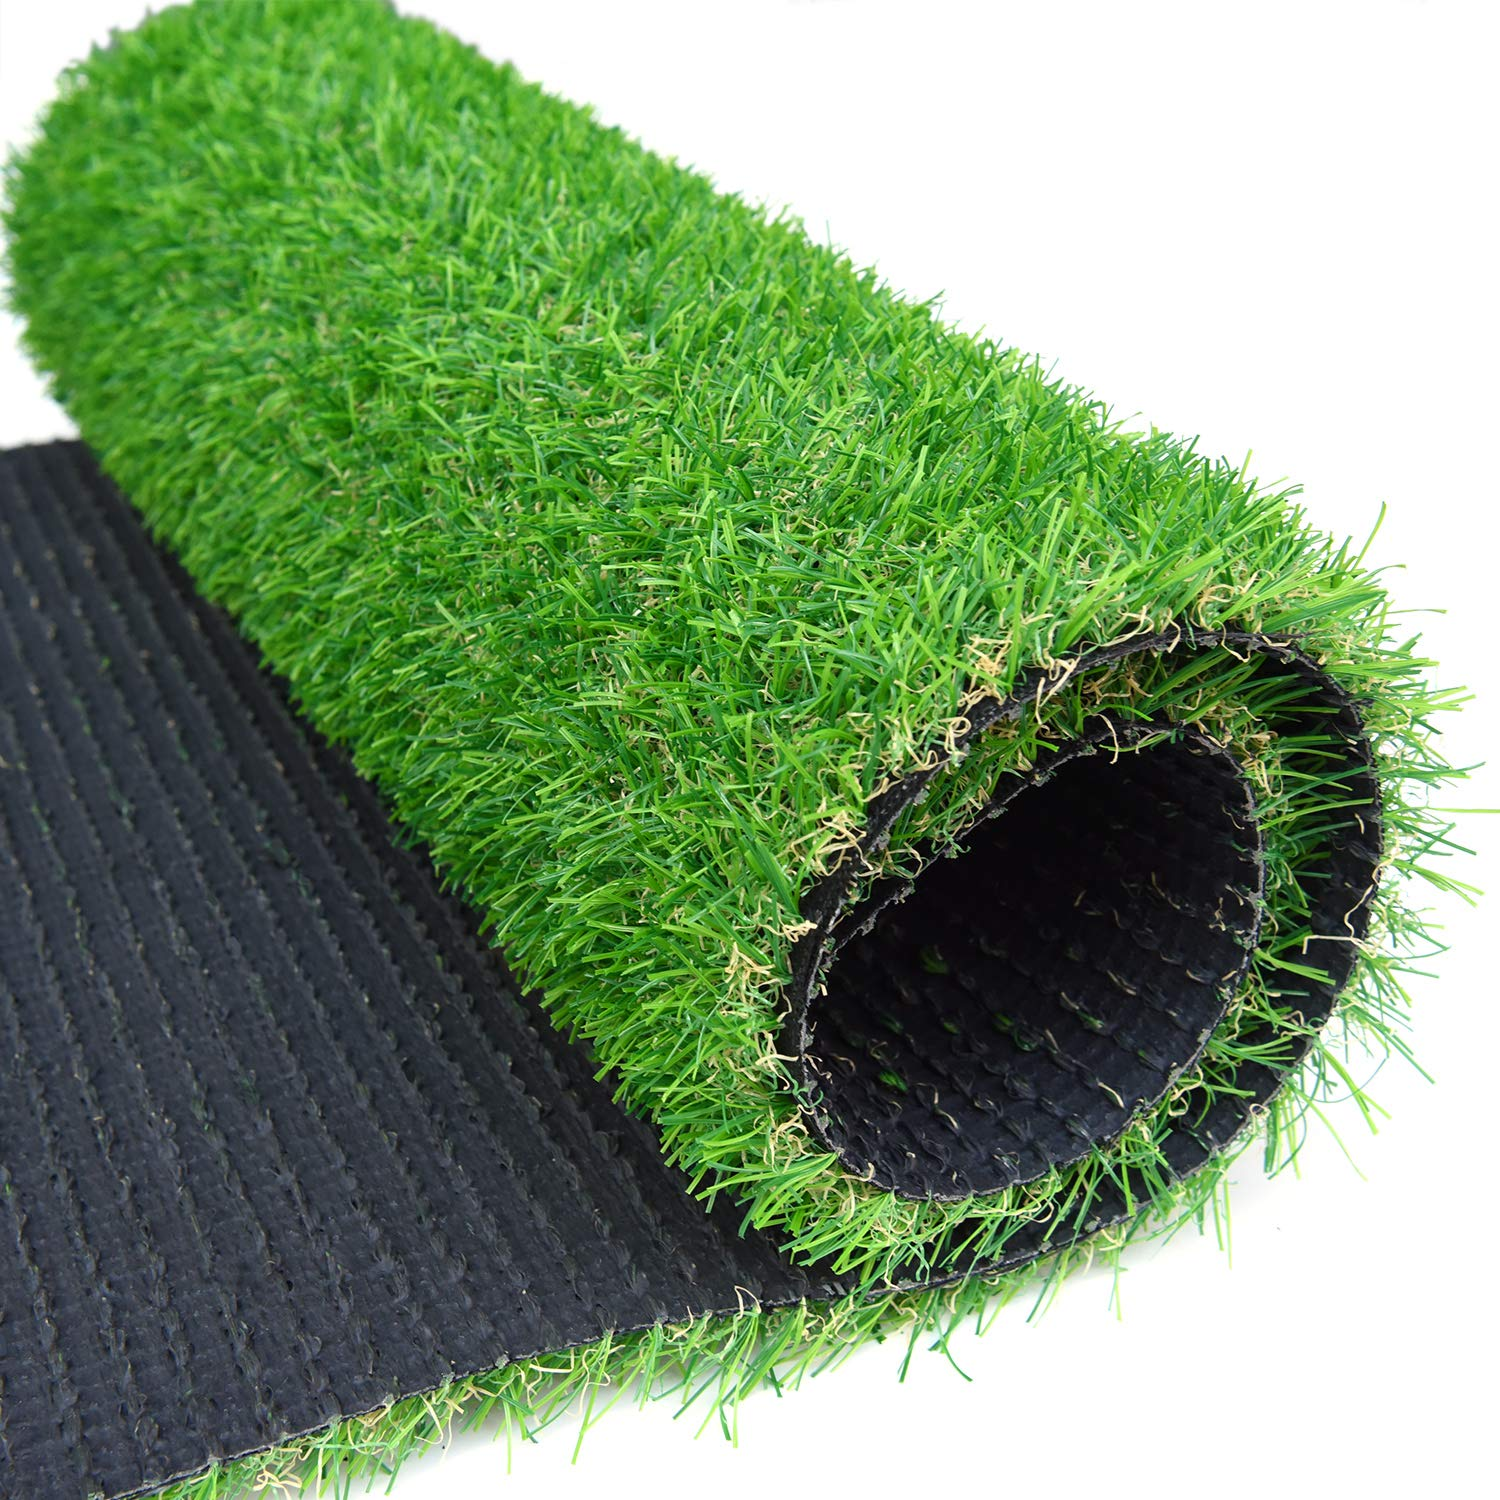 "RoundLove Artificial Grass Turf Patch, 1"" 4 Tone Synthetic Grass Mat w/Drainage Holes & Rubber Backing, Lush & Hard Pet Turf Astroturf Rug, Fake Turf for Indoor & Outdoor Patio Decor"